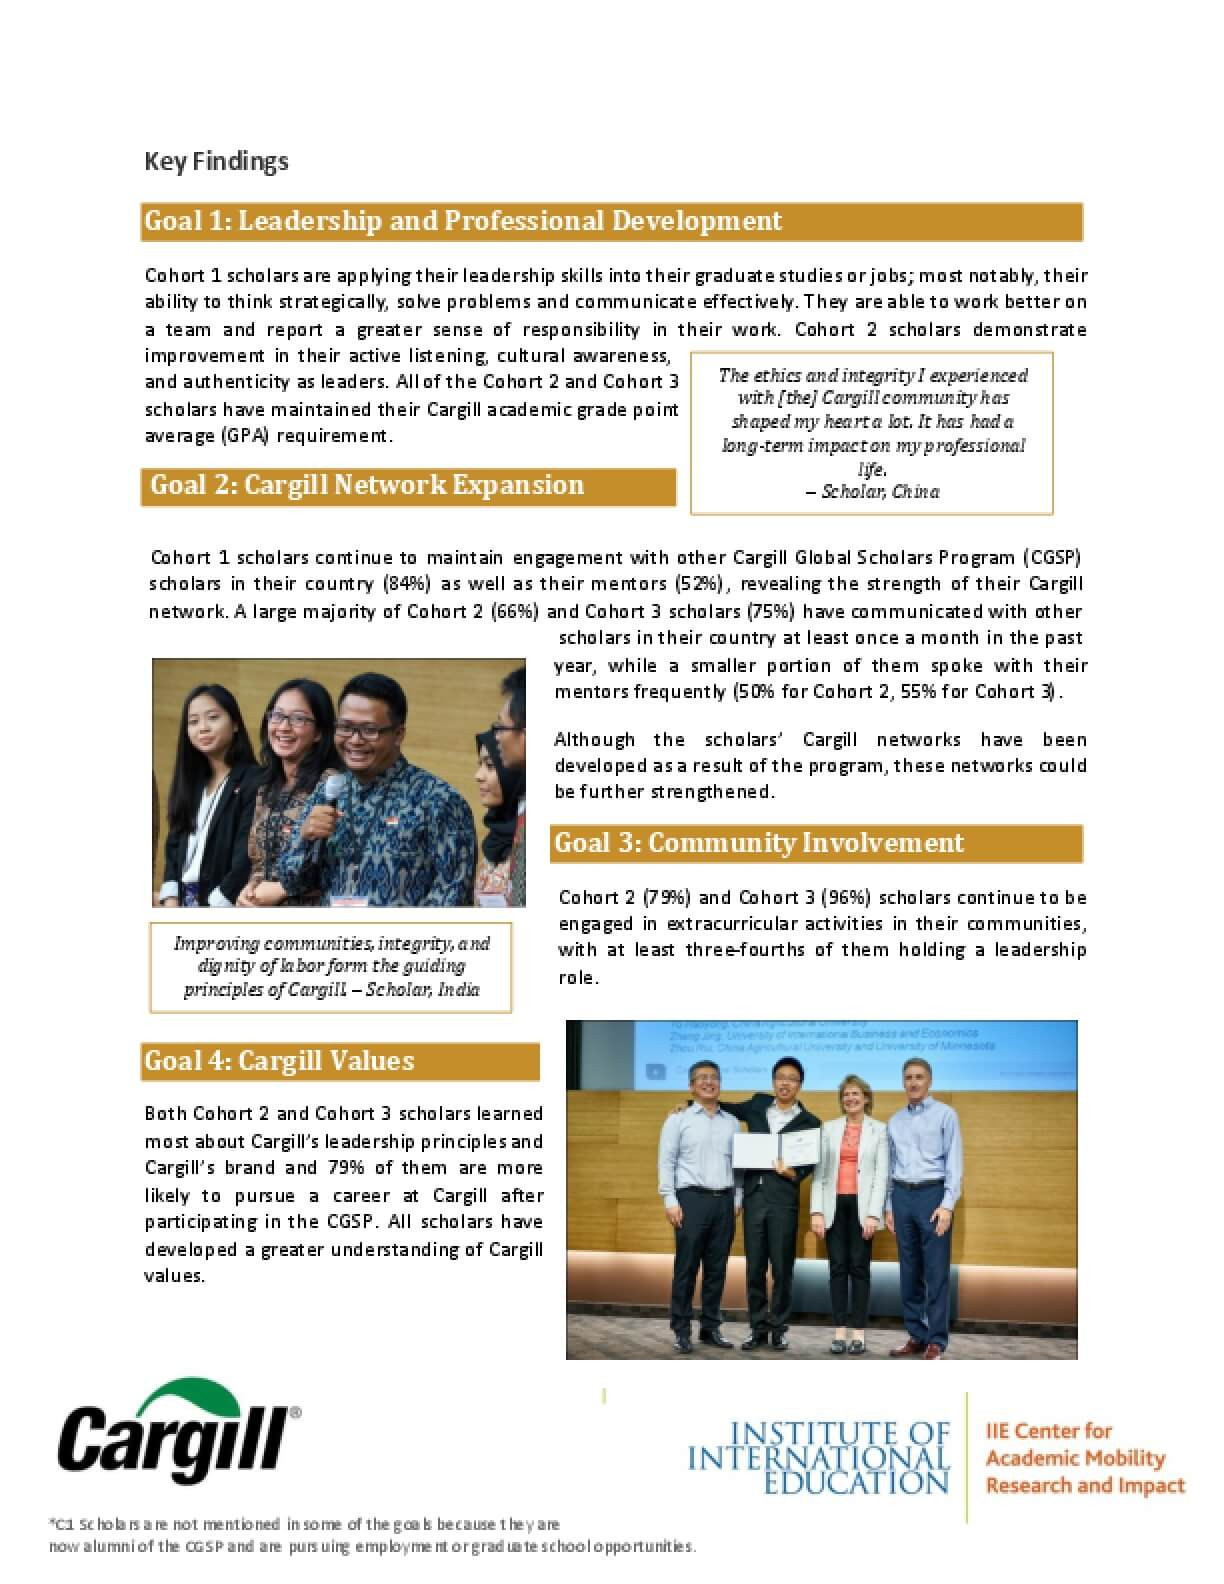 Cargill Global Scholars Program Key Findings 2016